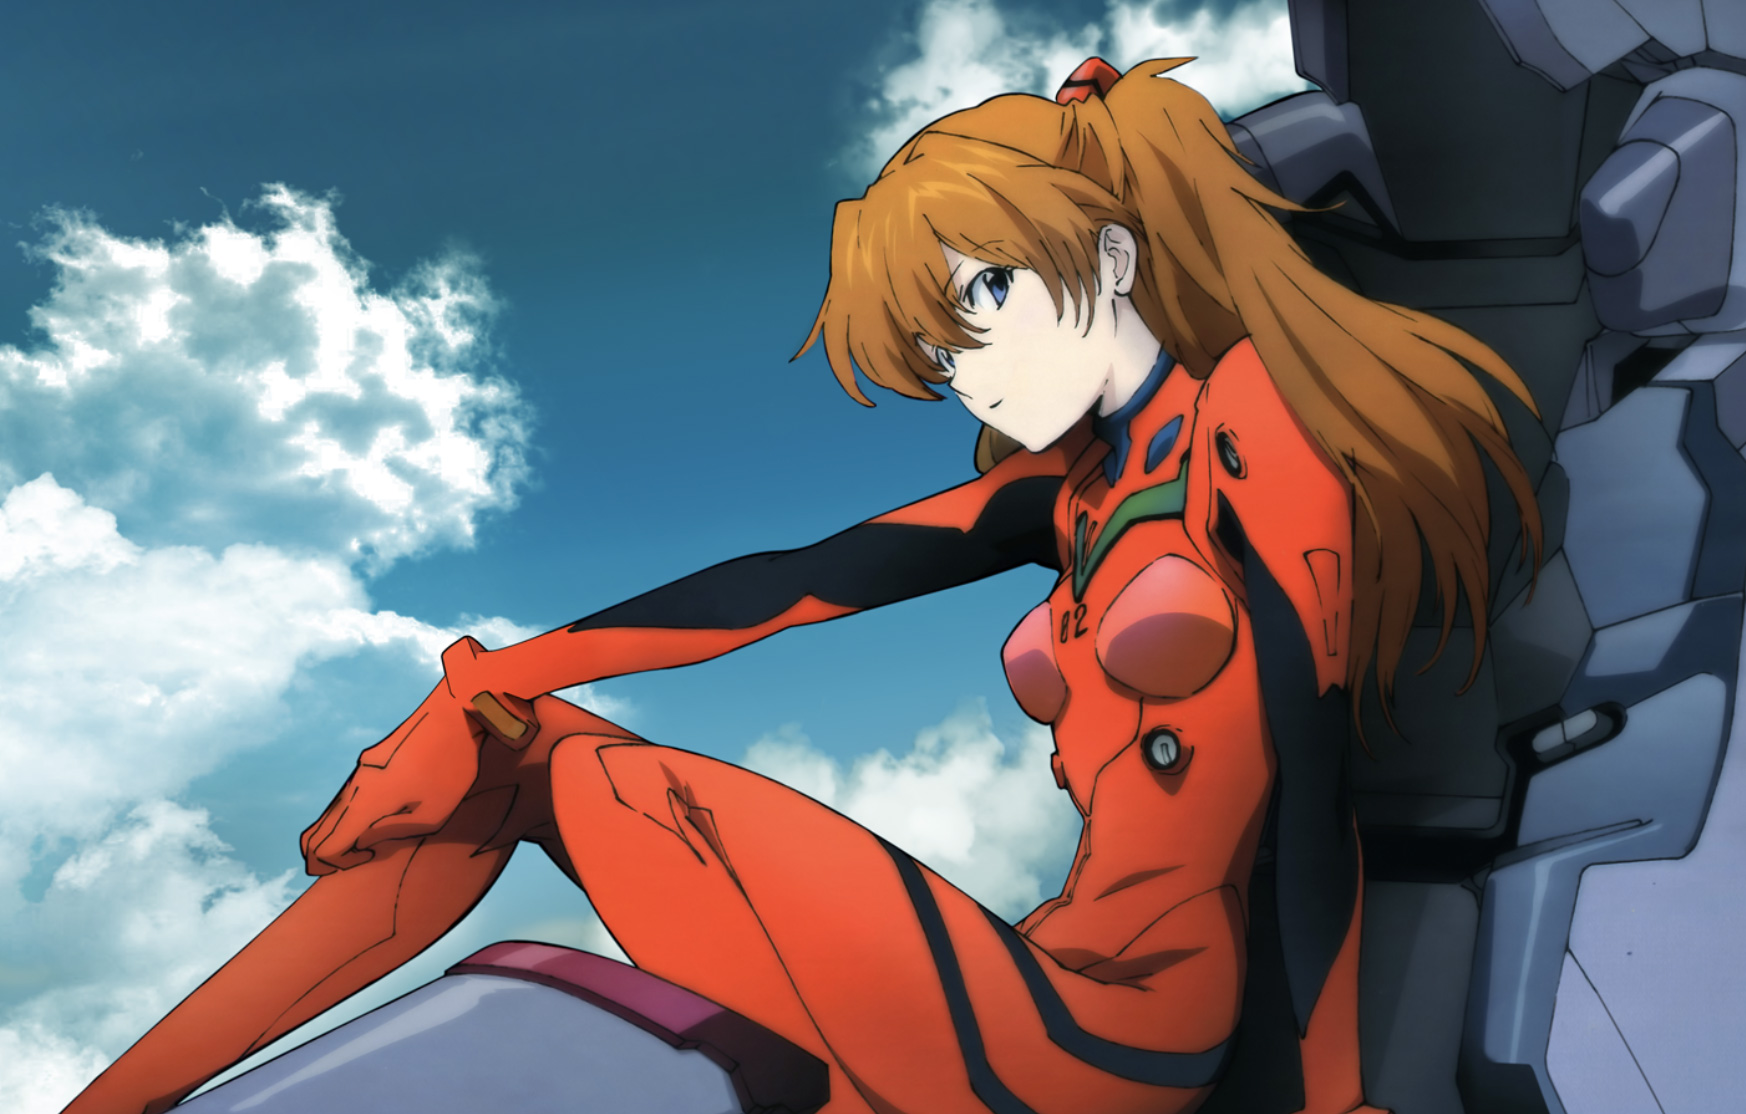 Screenshot of Asuka Langley in Evangelion anime sitting on a mech.